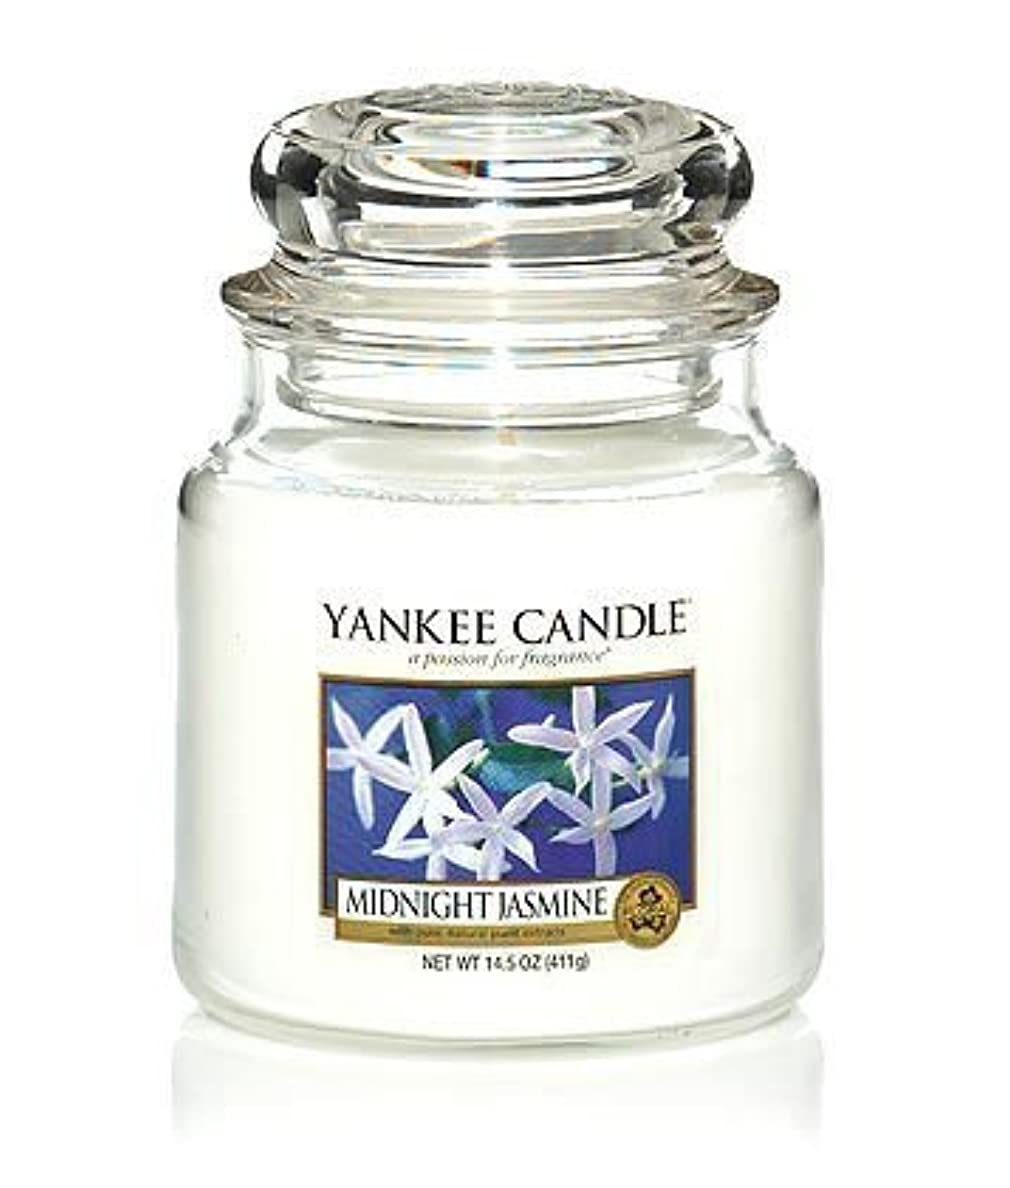 タンザニアメンダシティ軍艦Yankee Candle Midnight Jasmine Medium Jar Candle, Floral Scent by Yankee Candle [並行輸入品]